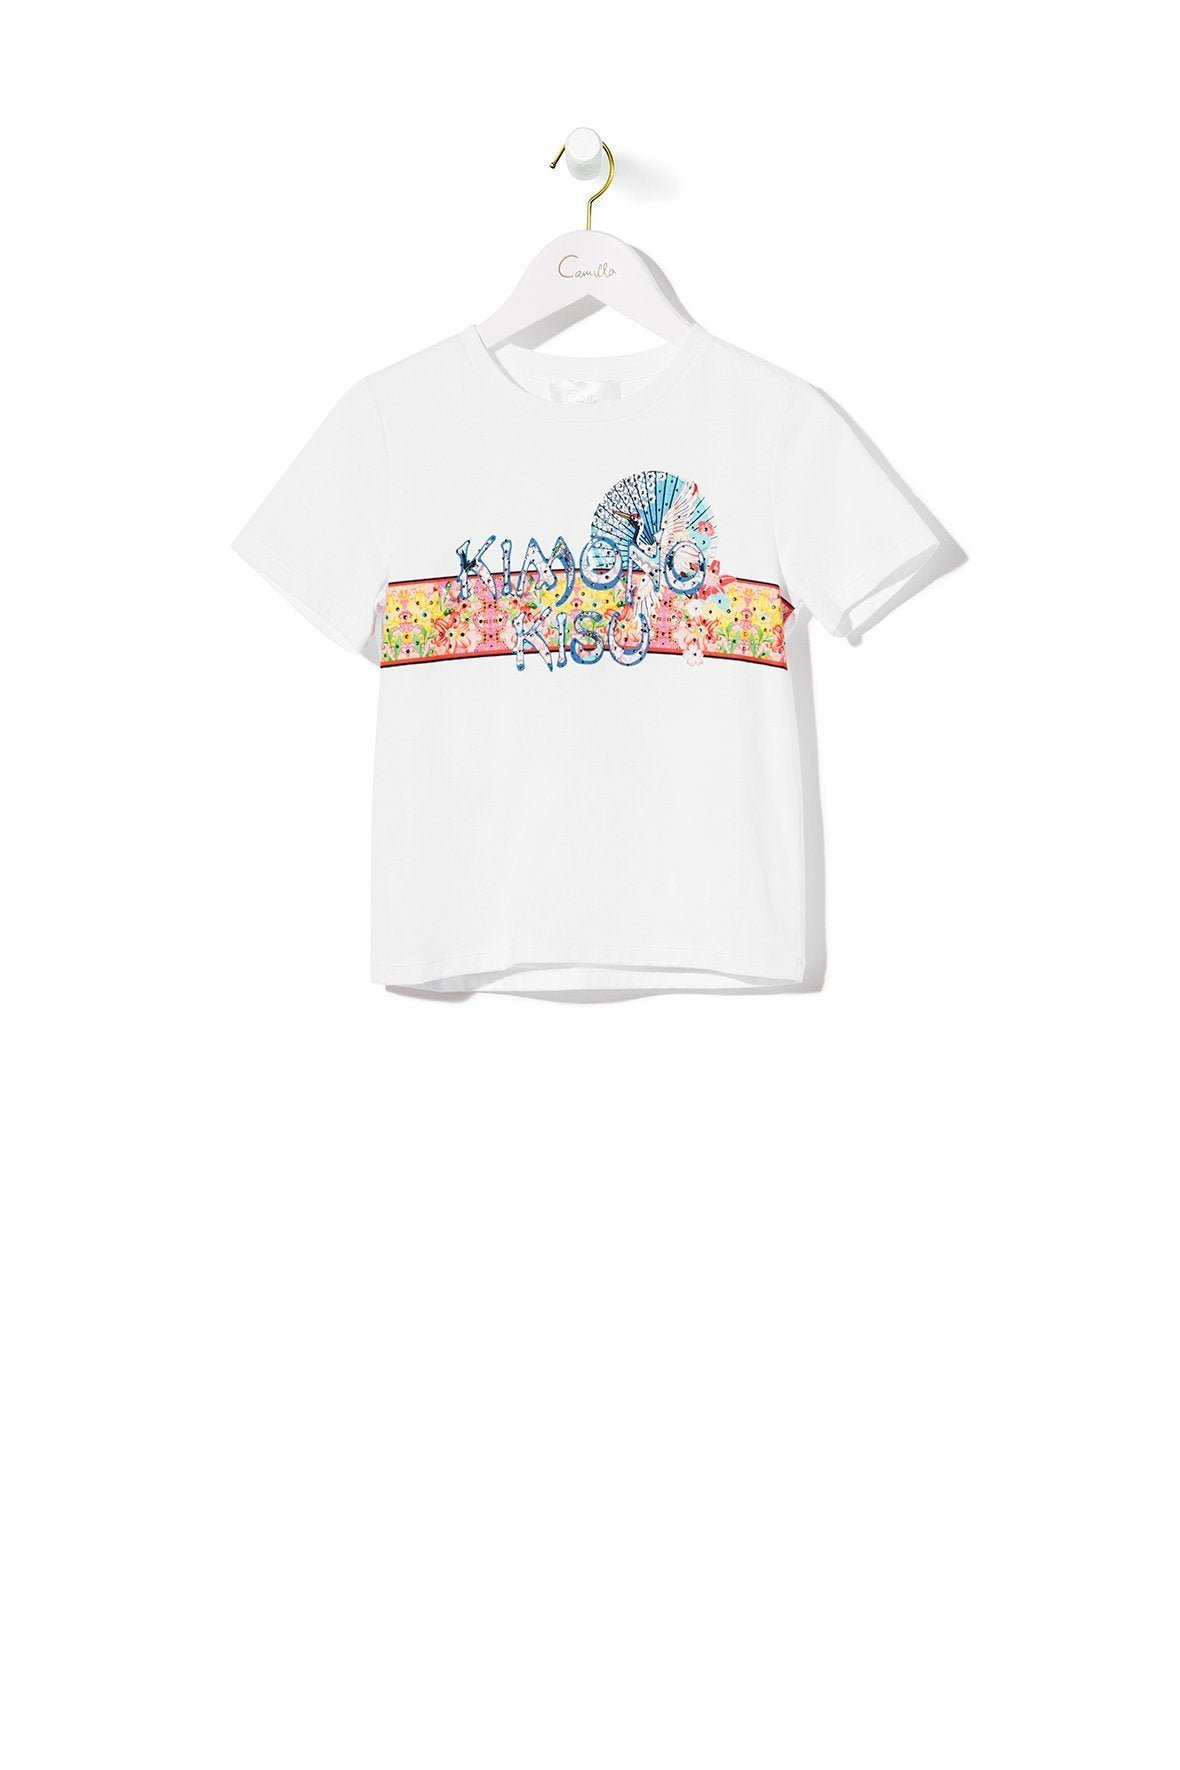 KIDS' SHORT SLEEVE T-SHIRT MISO IN LOVE